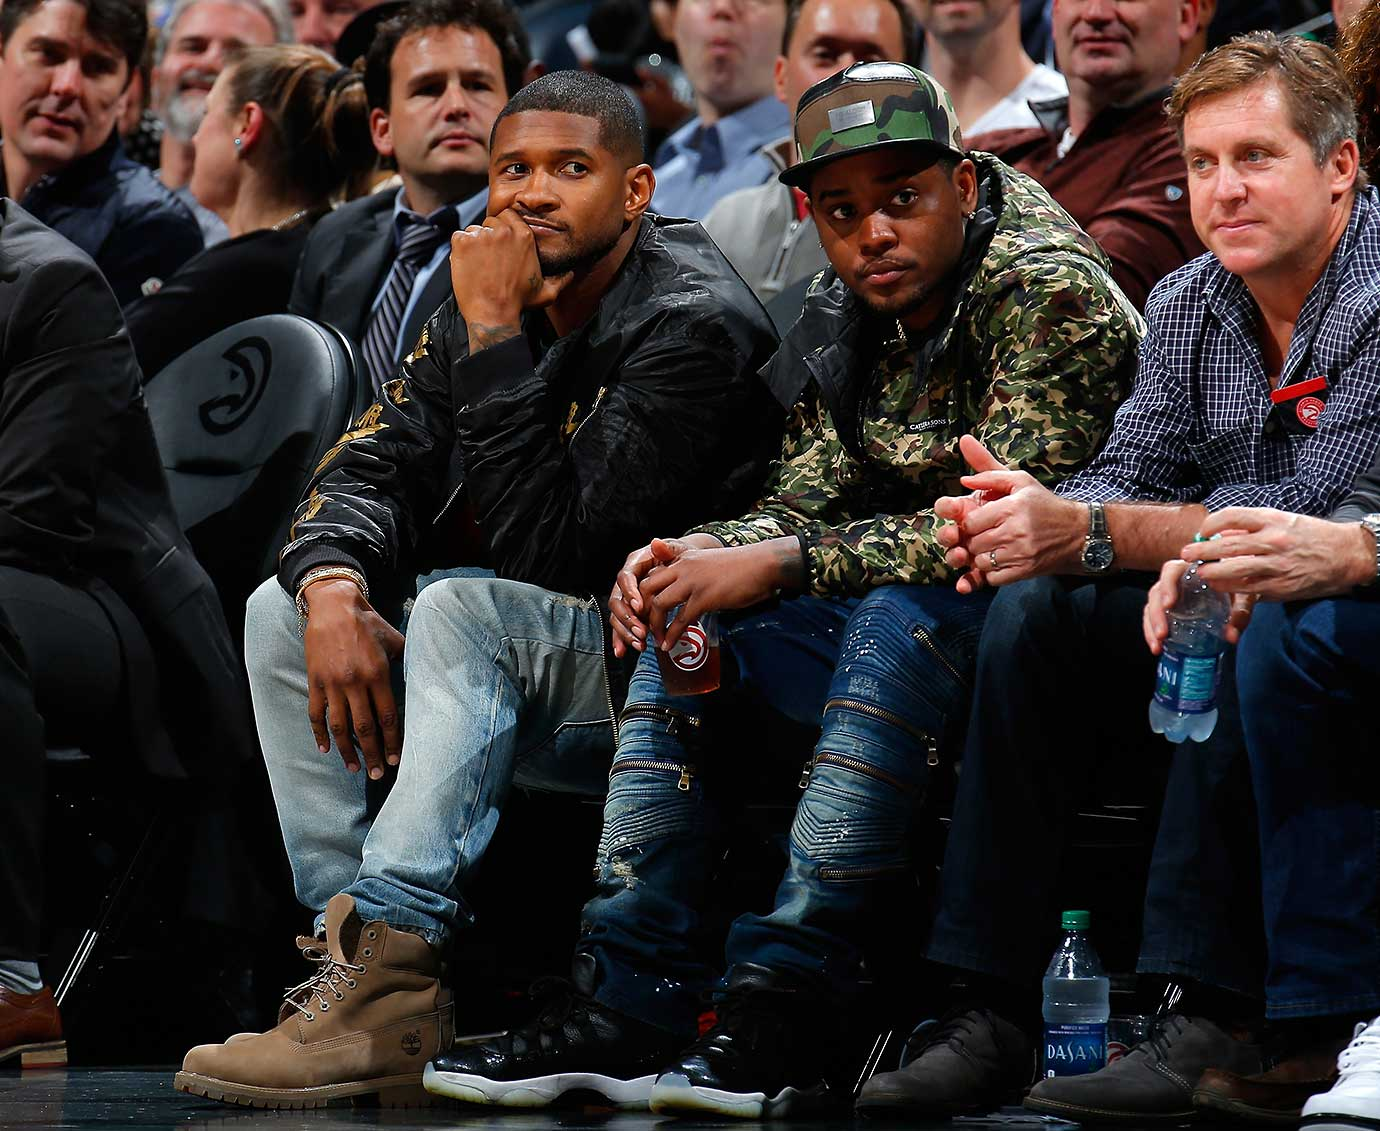 Recording artist Usher looks on during the game between the Golden State Warriors and the Atlanta Hawks.